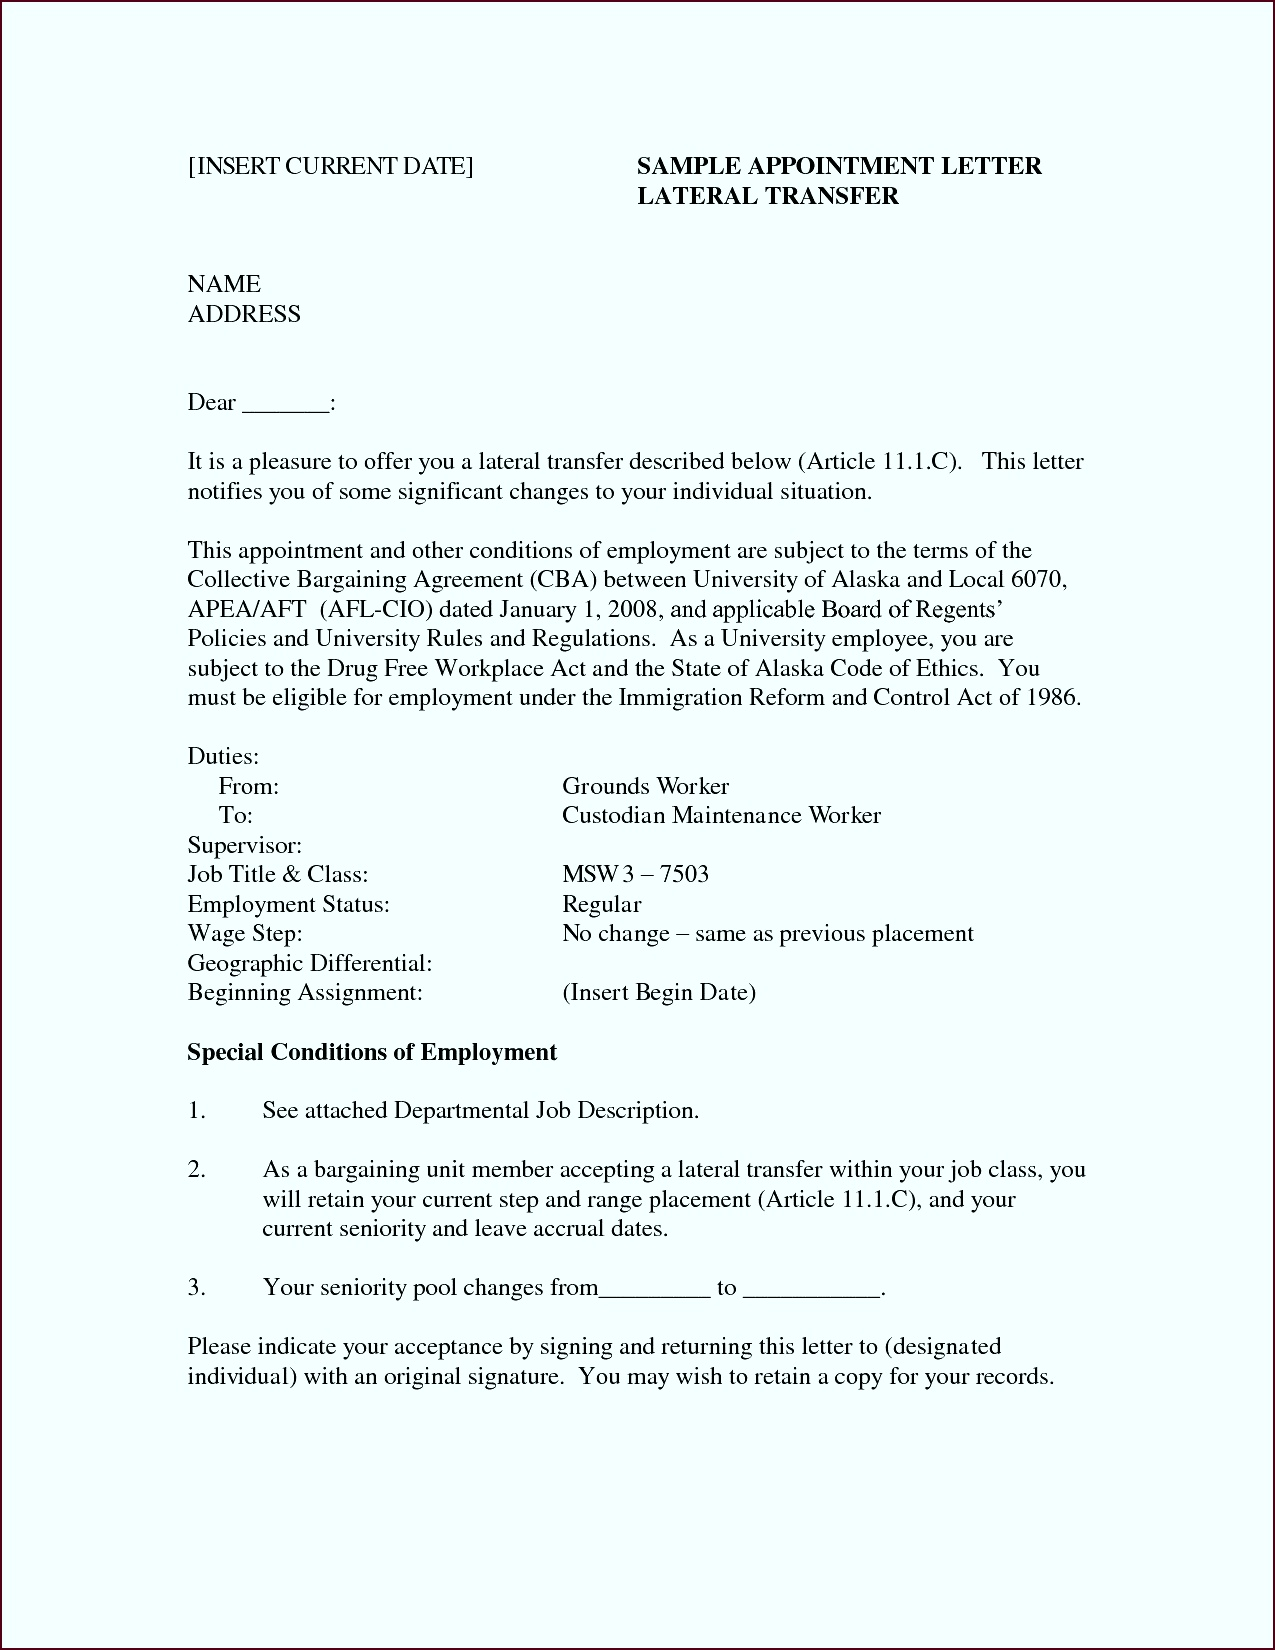 free basic resume templates microsoft word new cover letter template word 2014 fresh relocation cover letters od of free basic resume templates microsoft word teppj